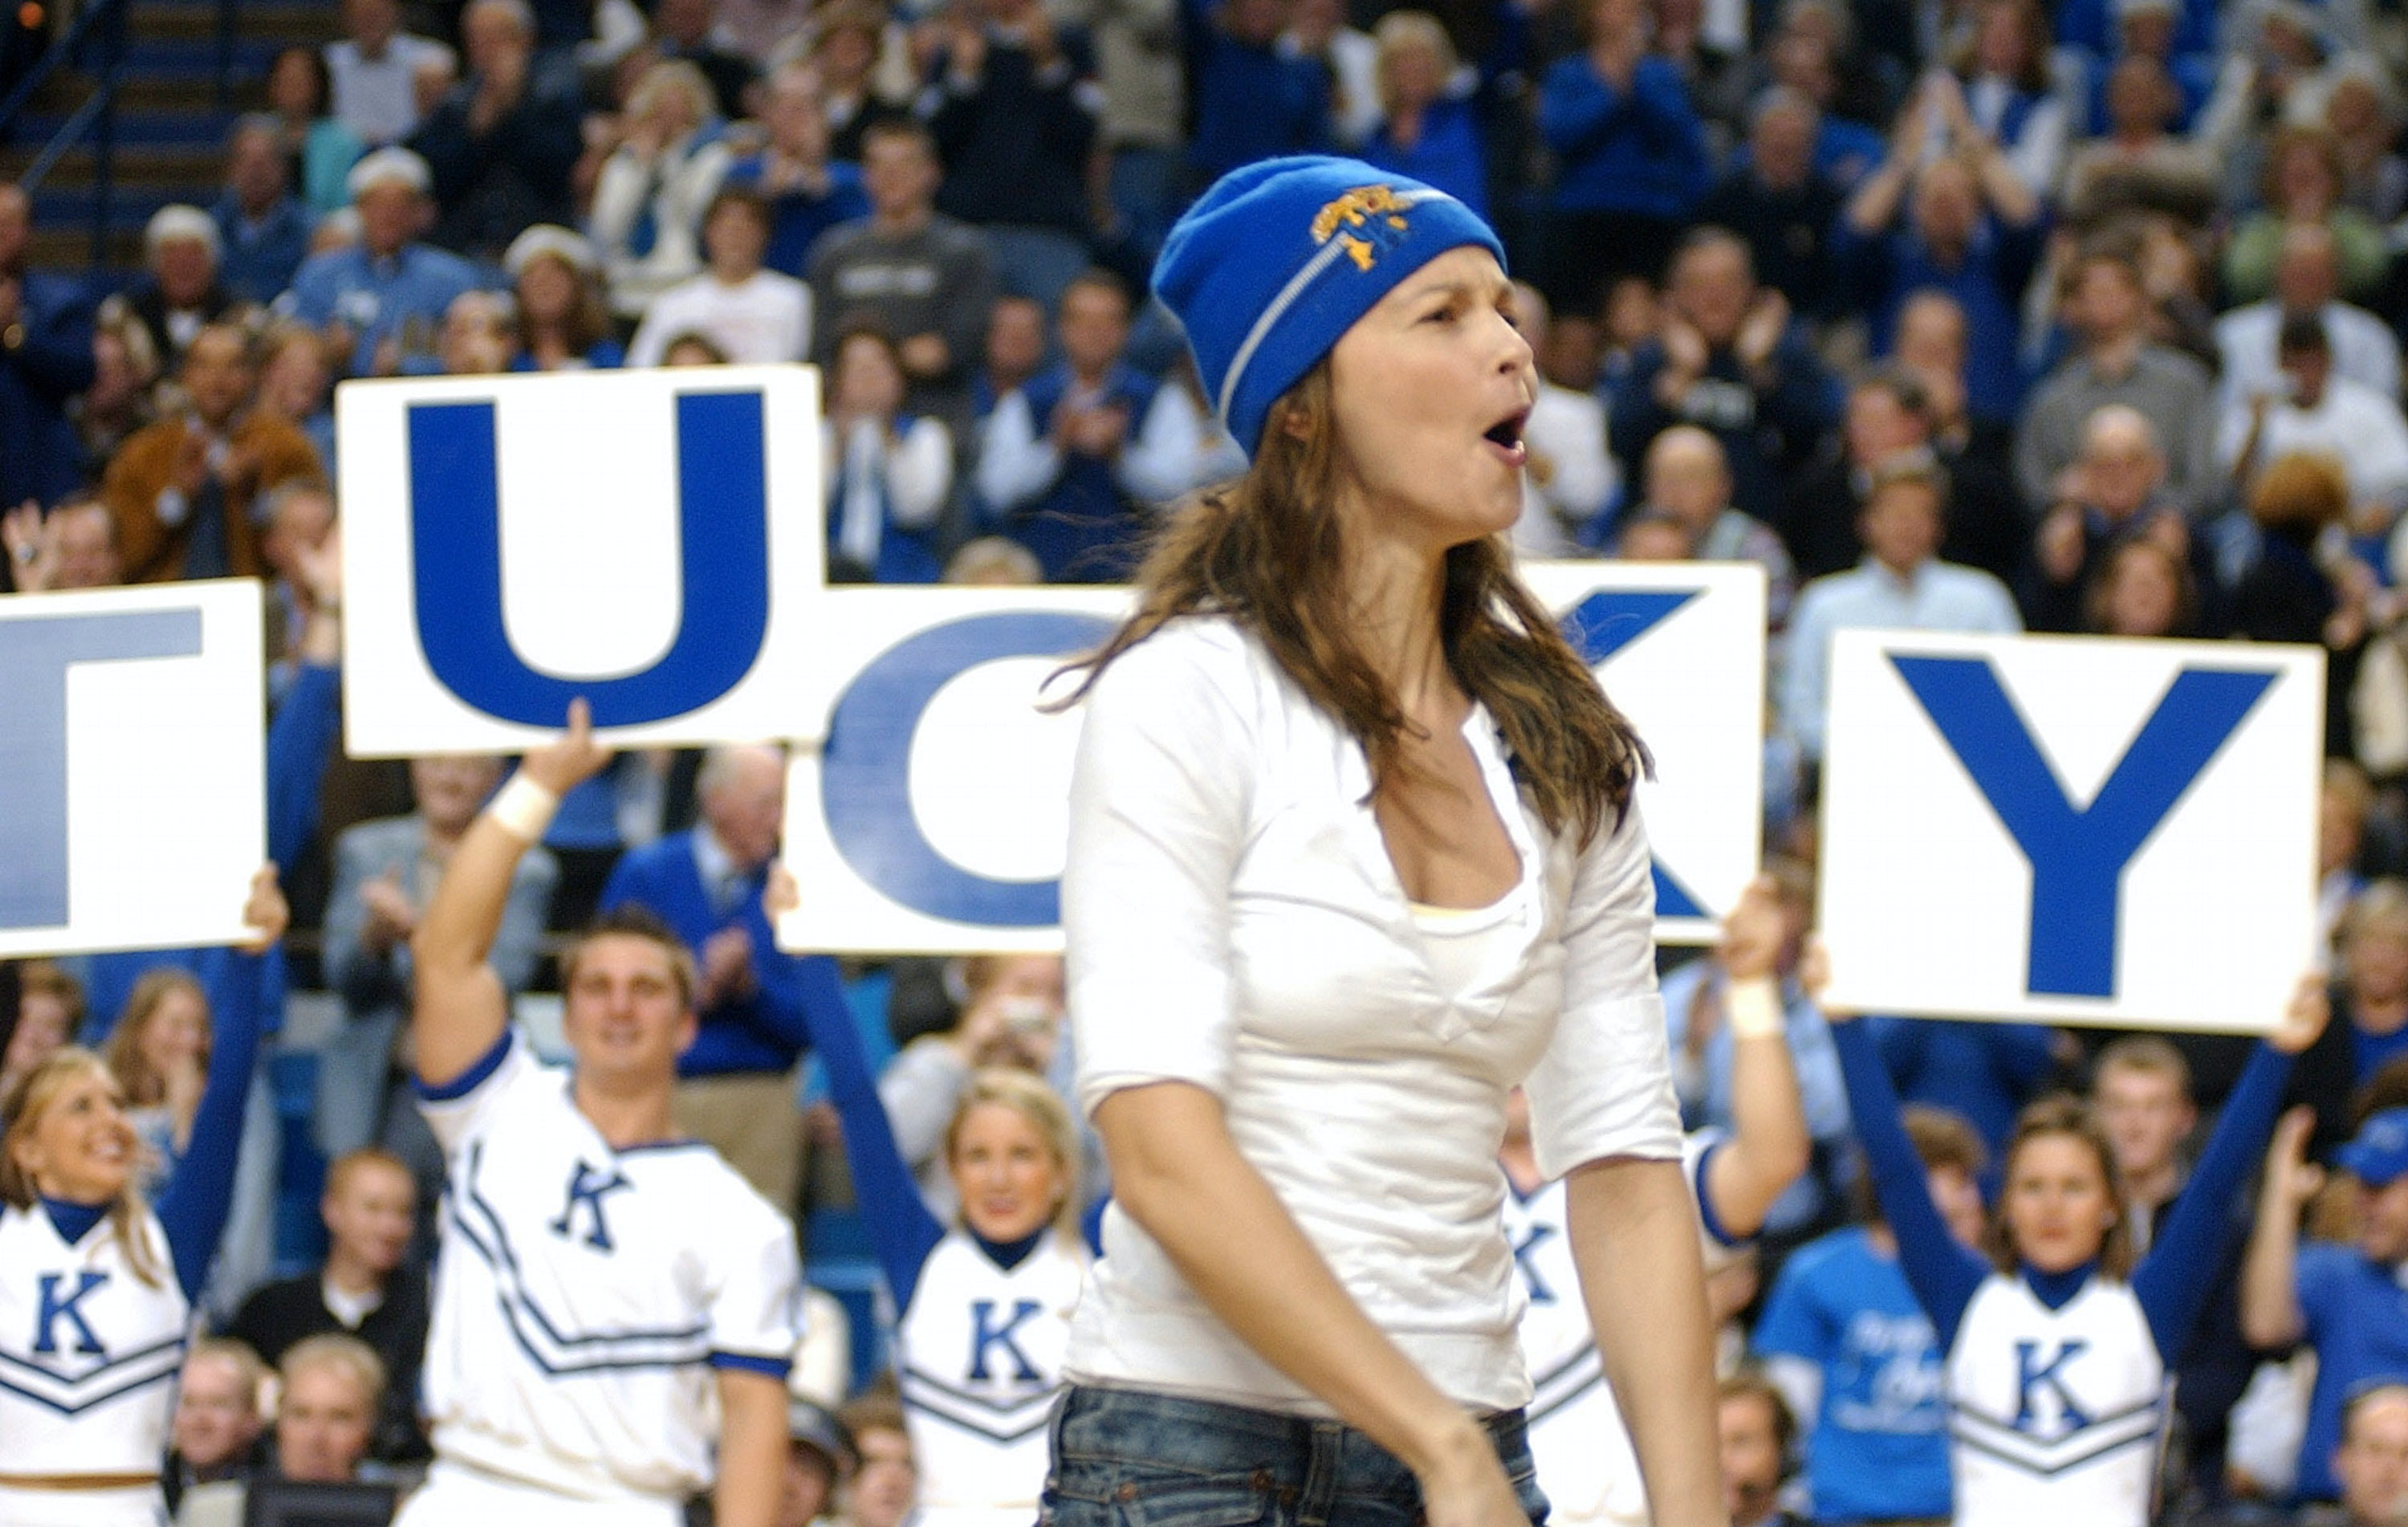 Ashley Judd Cunt forget your team: your online violence toward girls and